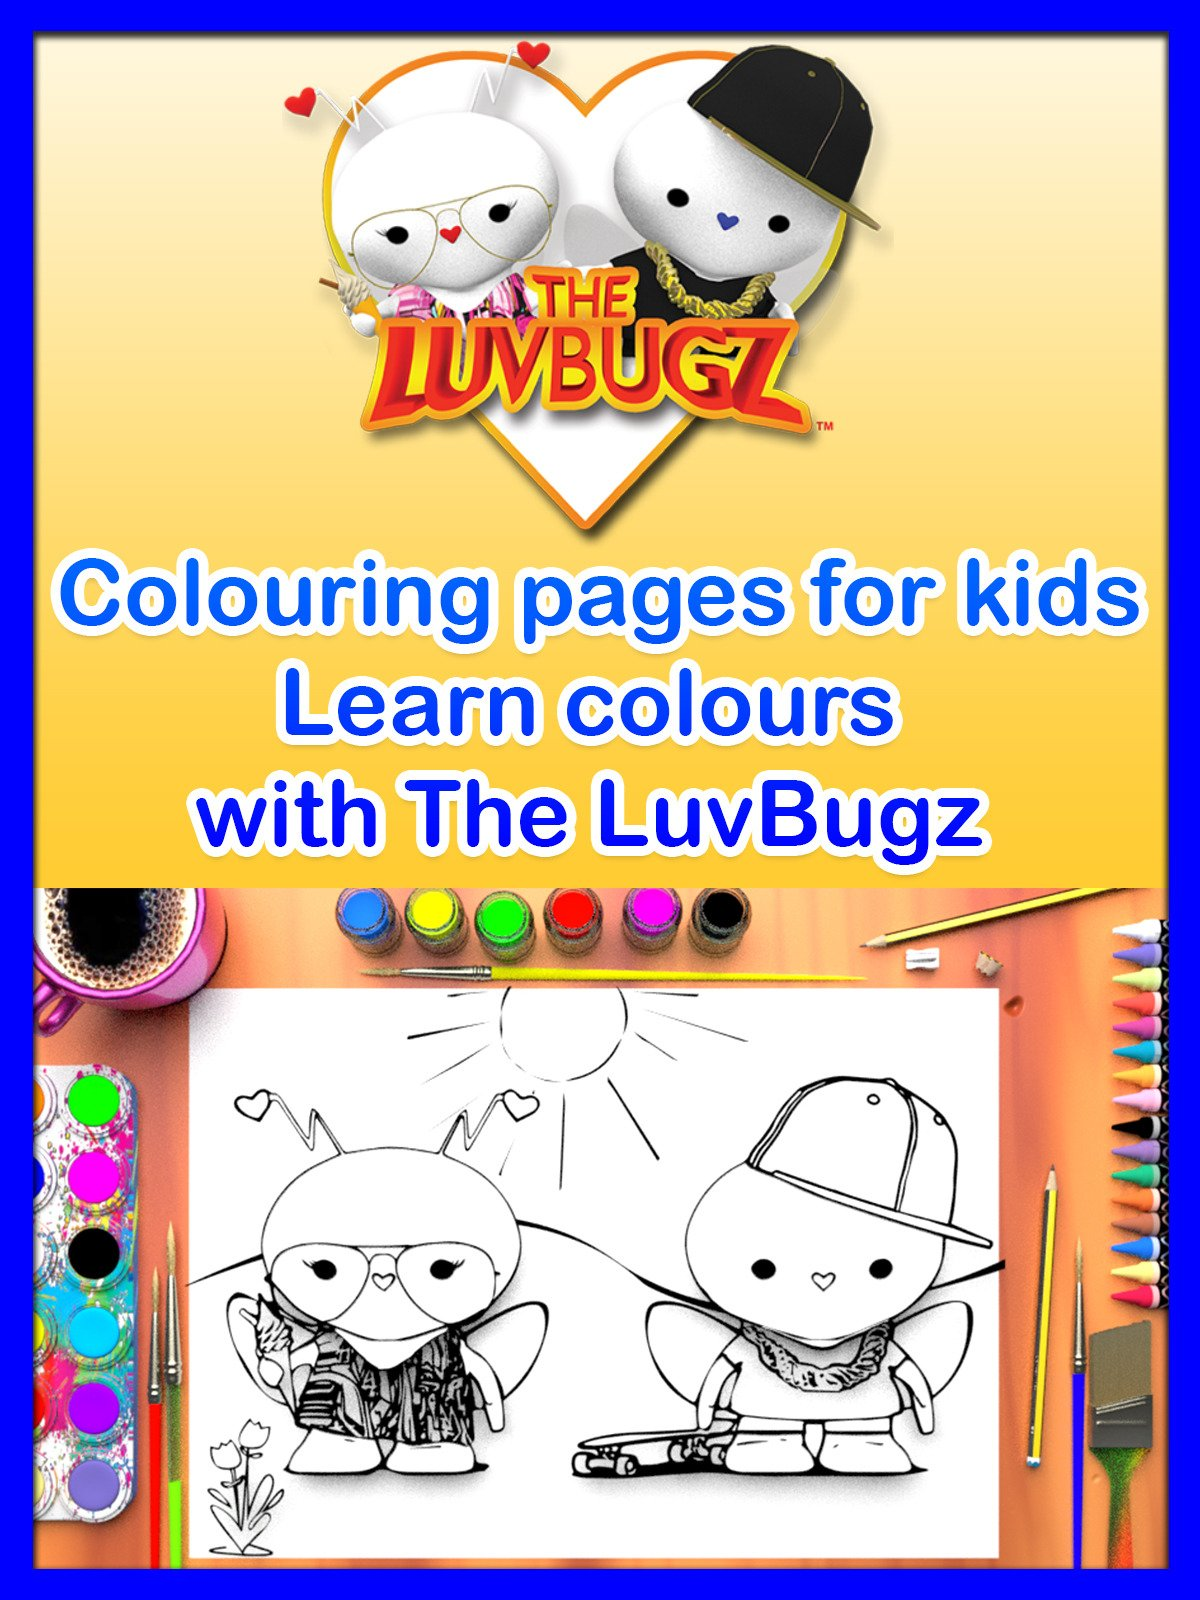 Colouring pages for kids, Learn Colours with The LuvBugz